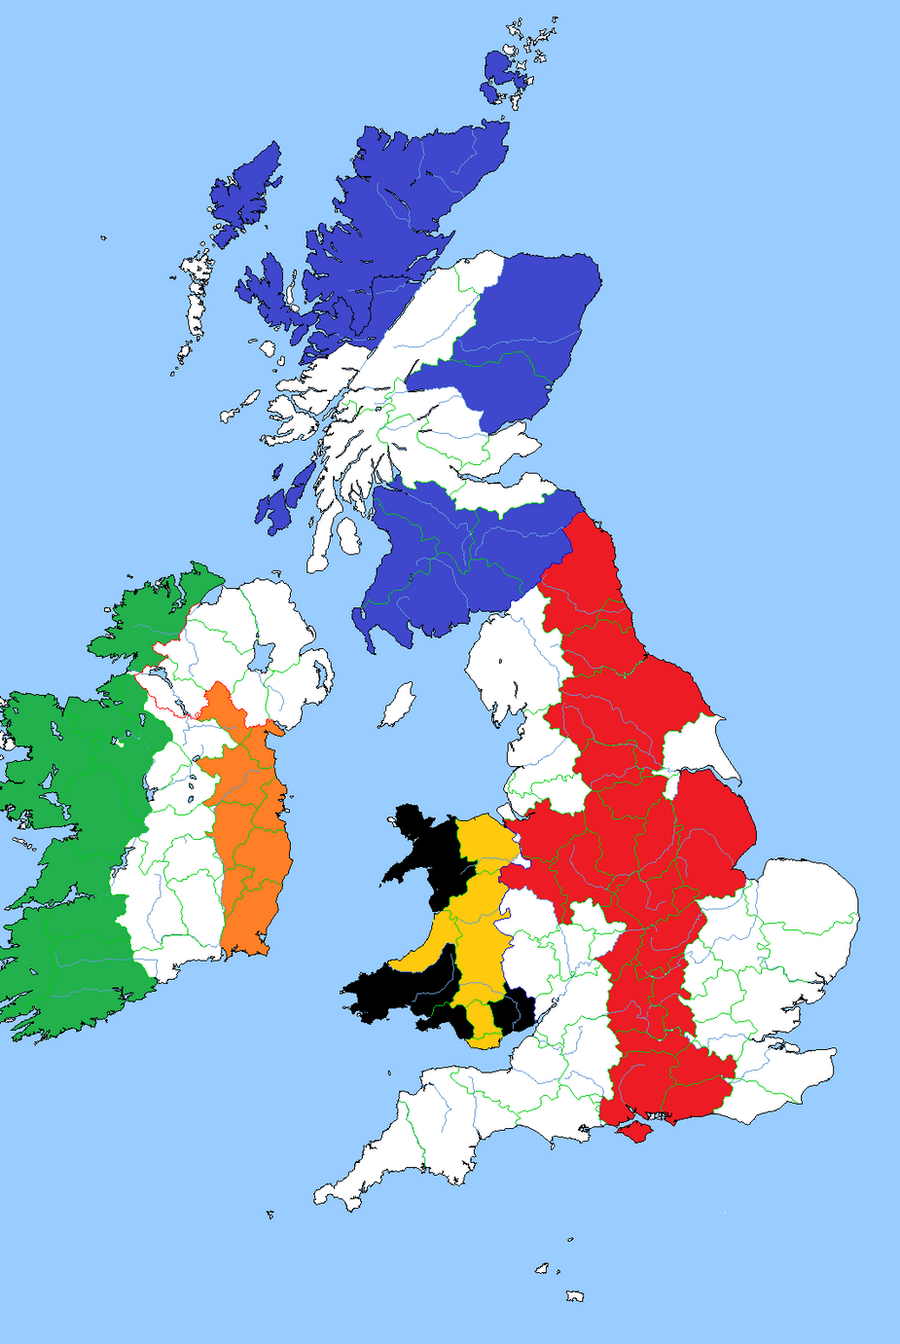 Britain And Ireland Flag Map By RoryTheLion On DeviantArt - Map of great britain and ireland